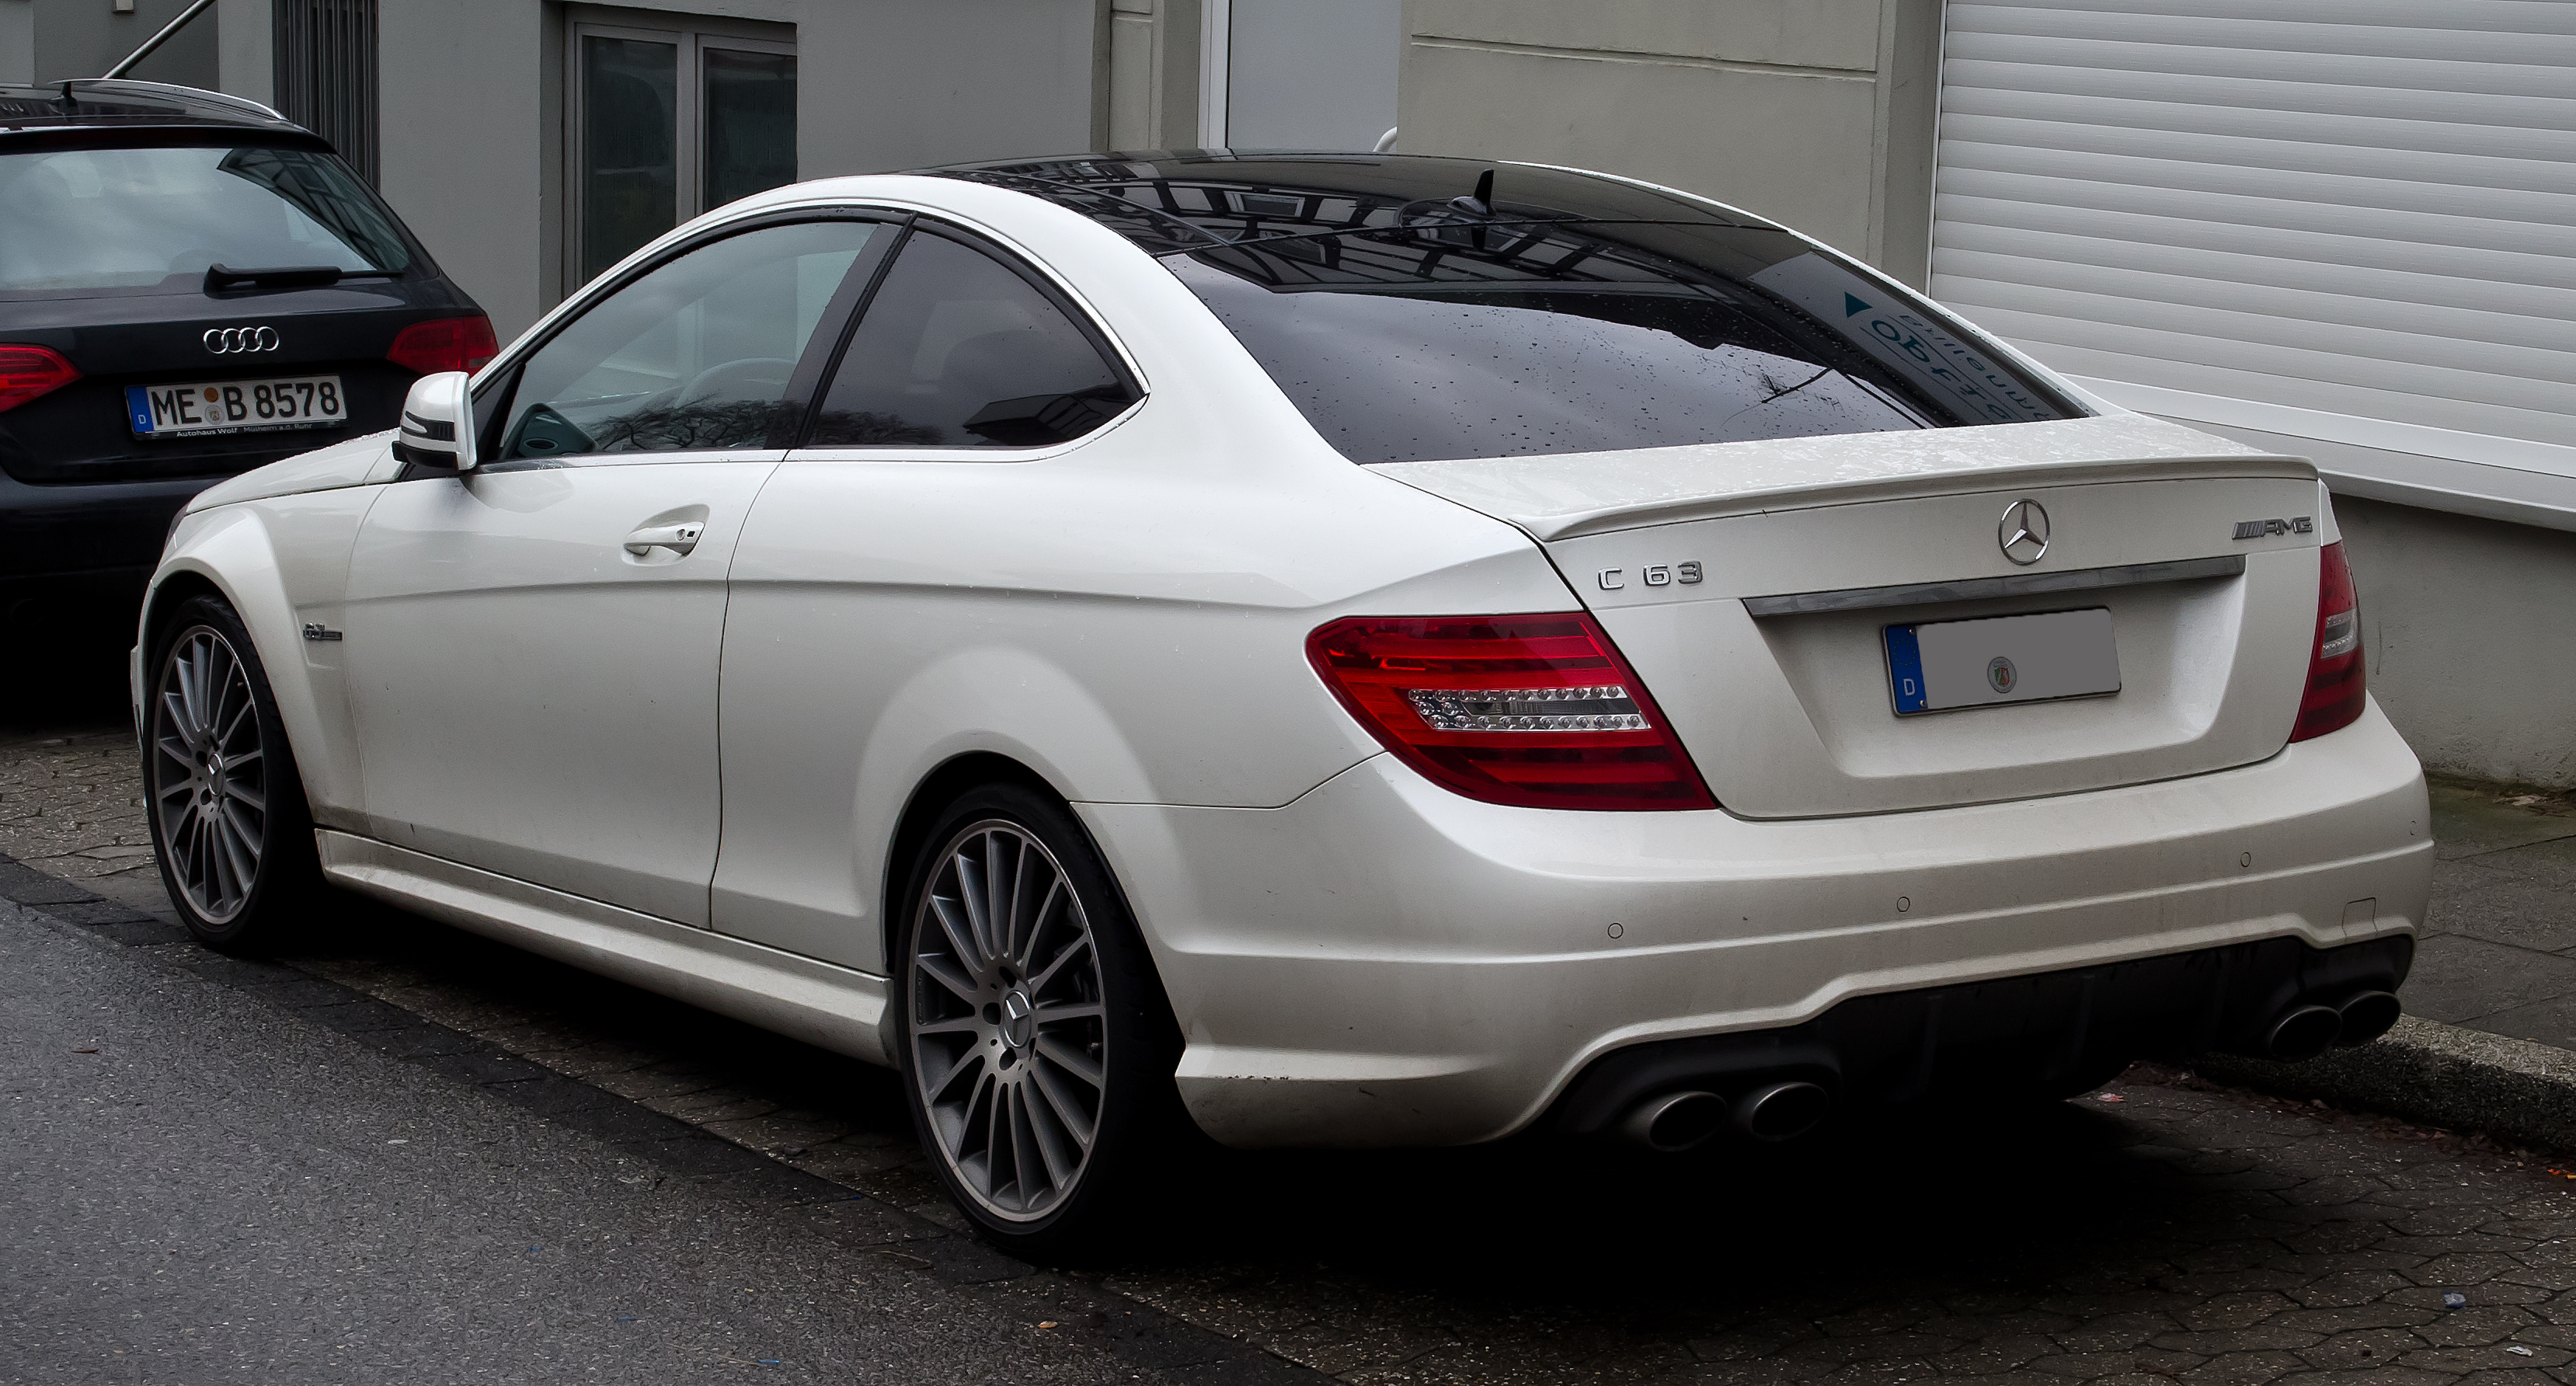 file mercedes benz c 63 amg coup c 204 heckansicht 26 februar 2012 w. Black Bedroom Furniture Sets. Home Design Ideas